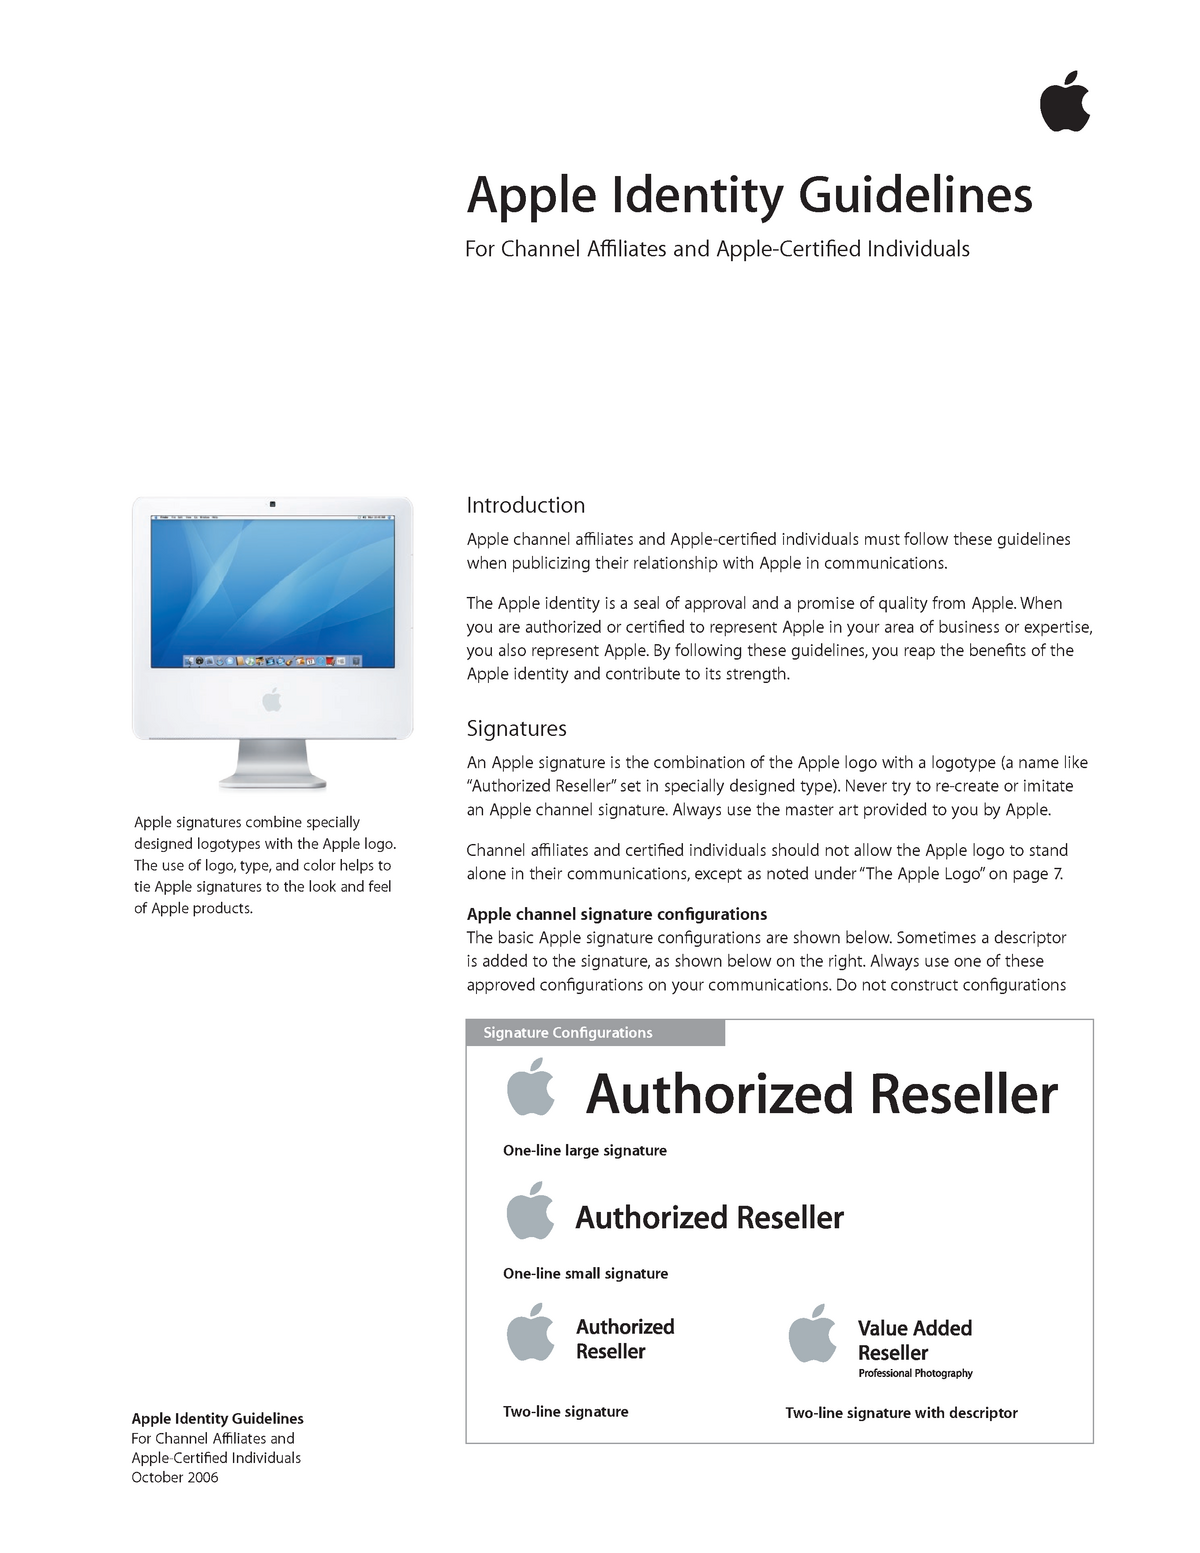 Apple Identity Guide WW - BUS3002 - Maastricht University